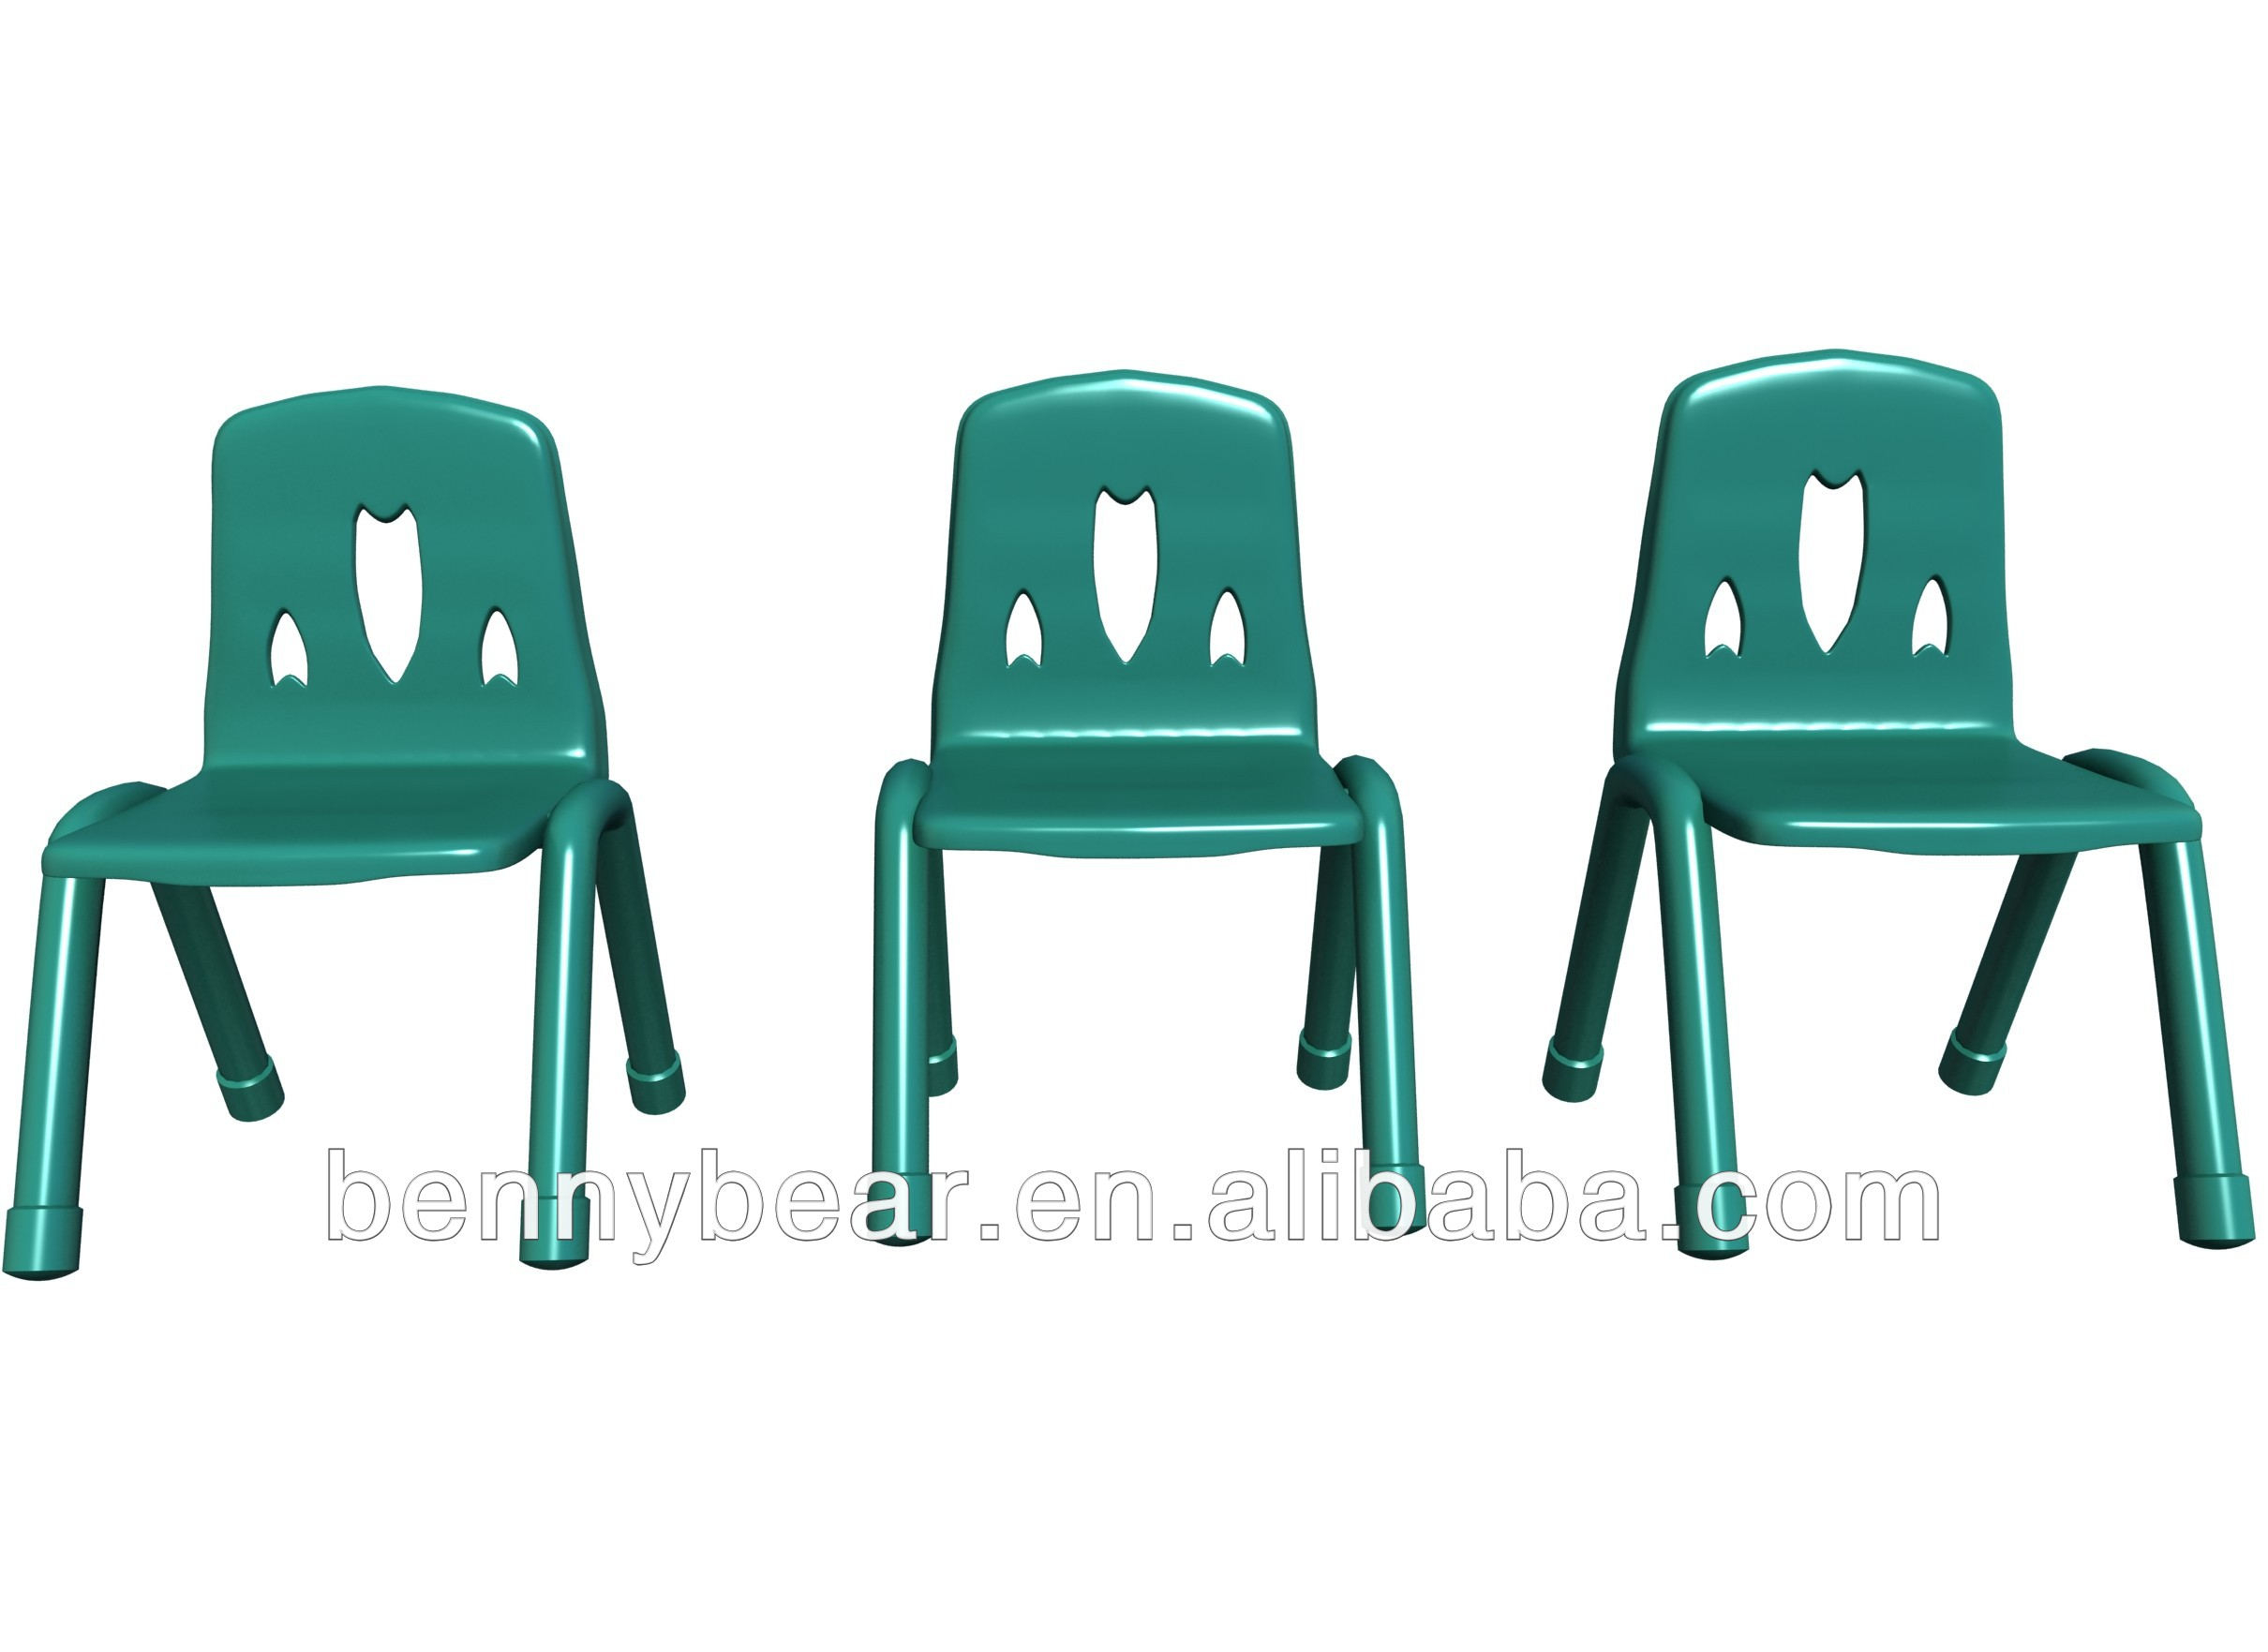 Stackable Plastic Chairs For Kids Stackable Plastic Chairs For